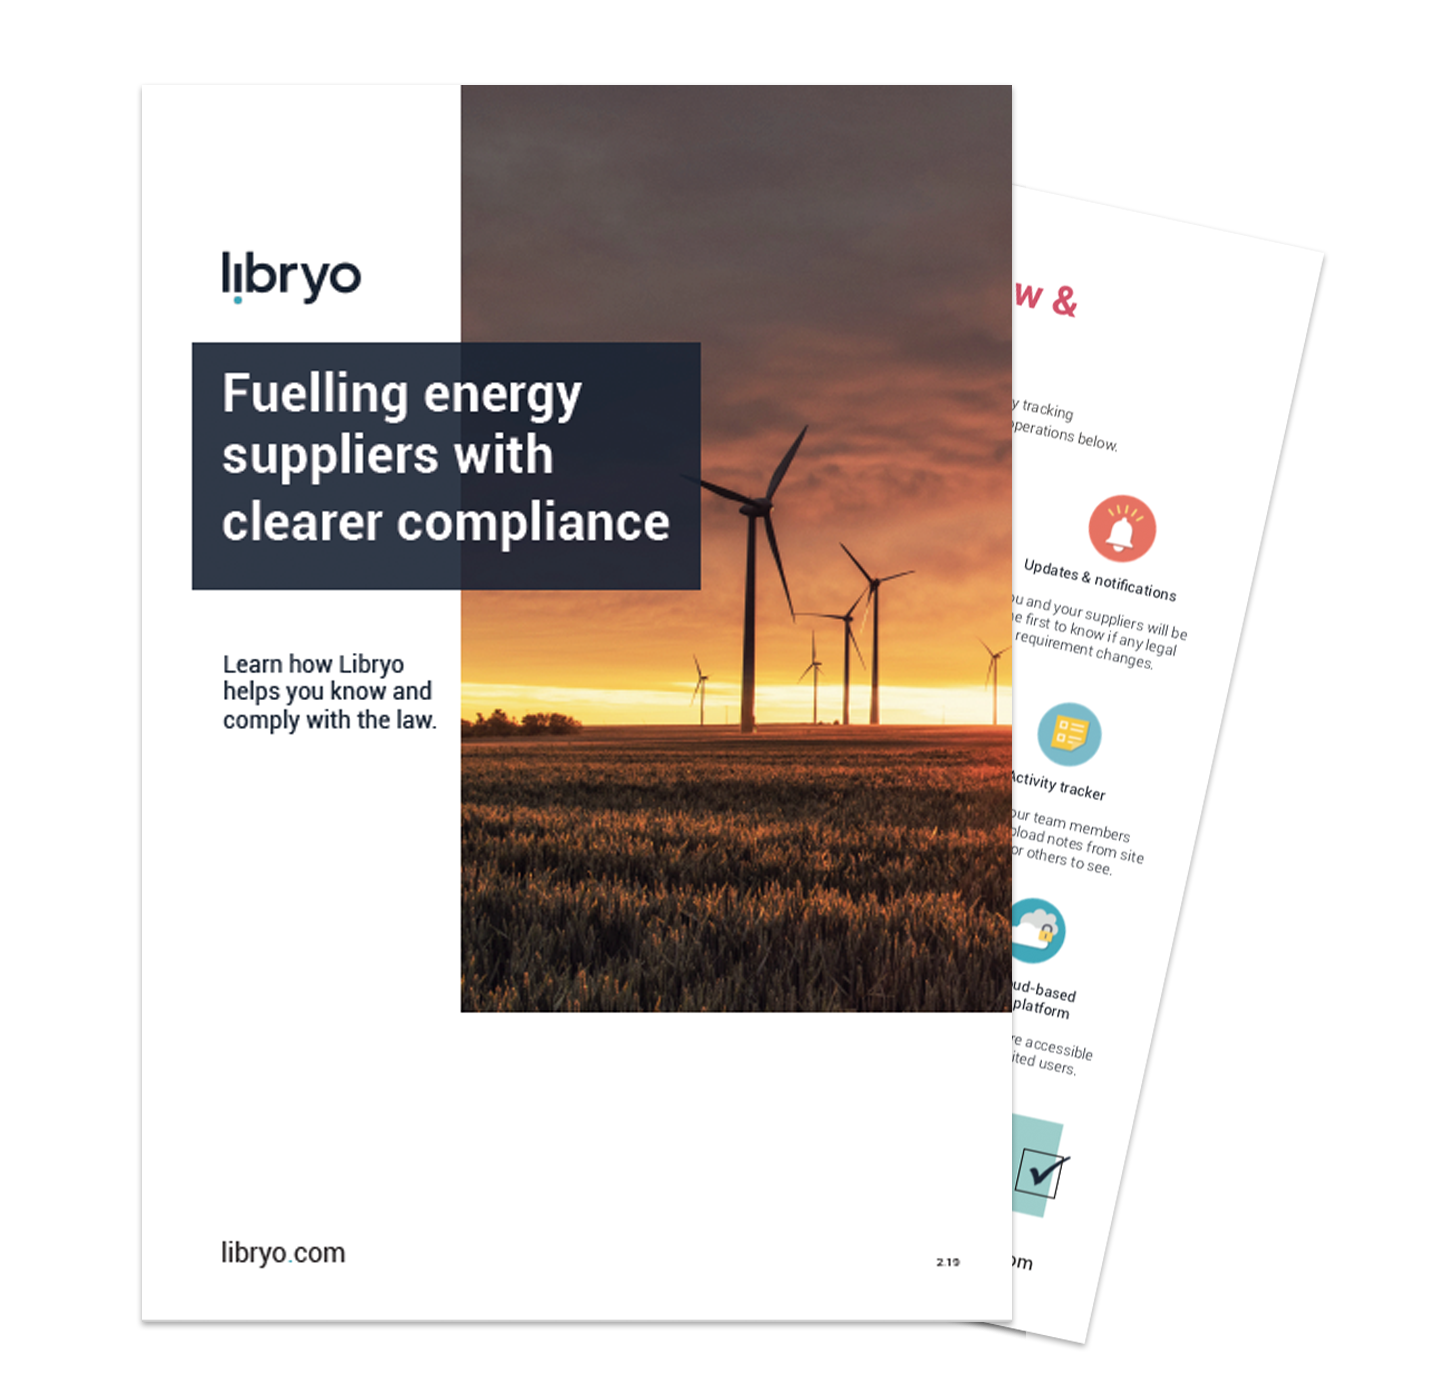 Preview of Energy Supplier brochure for Libryo